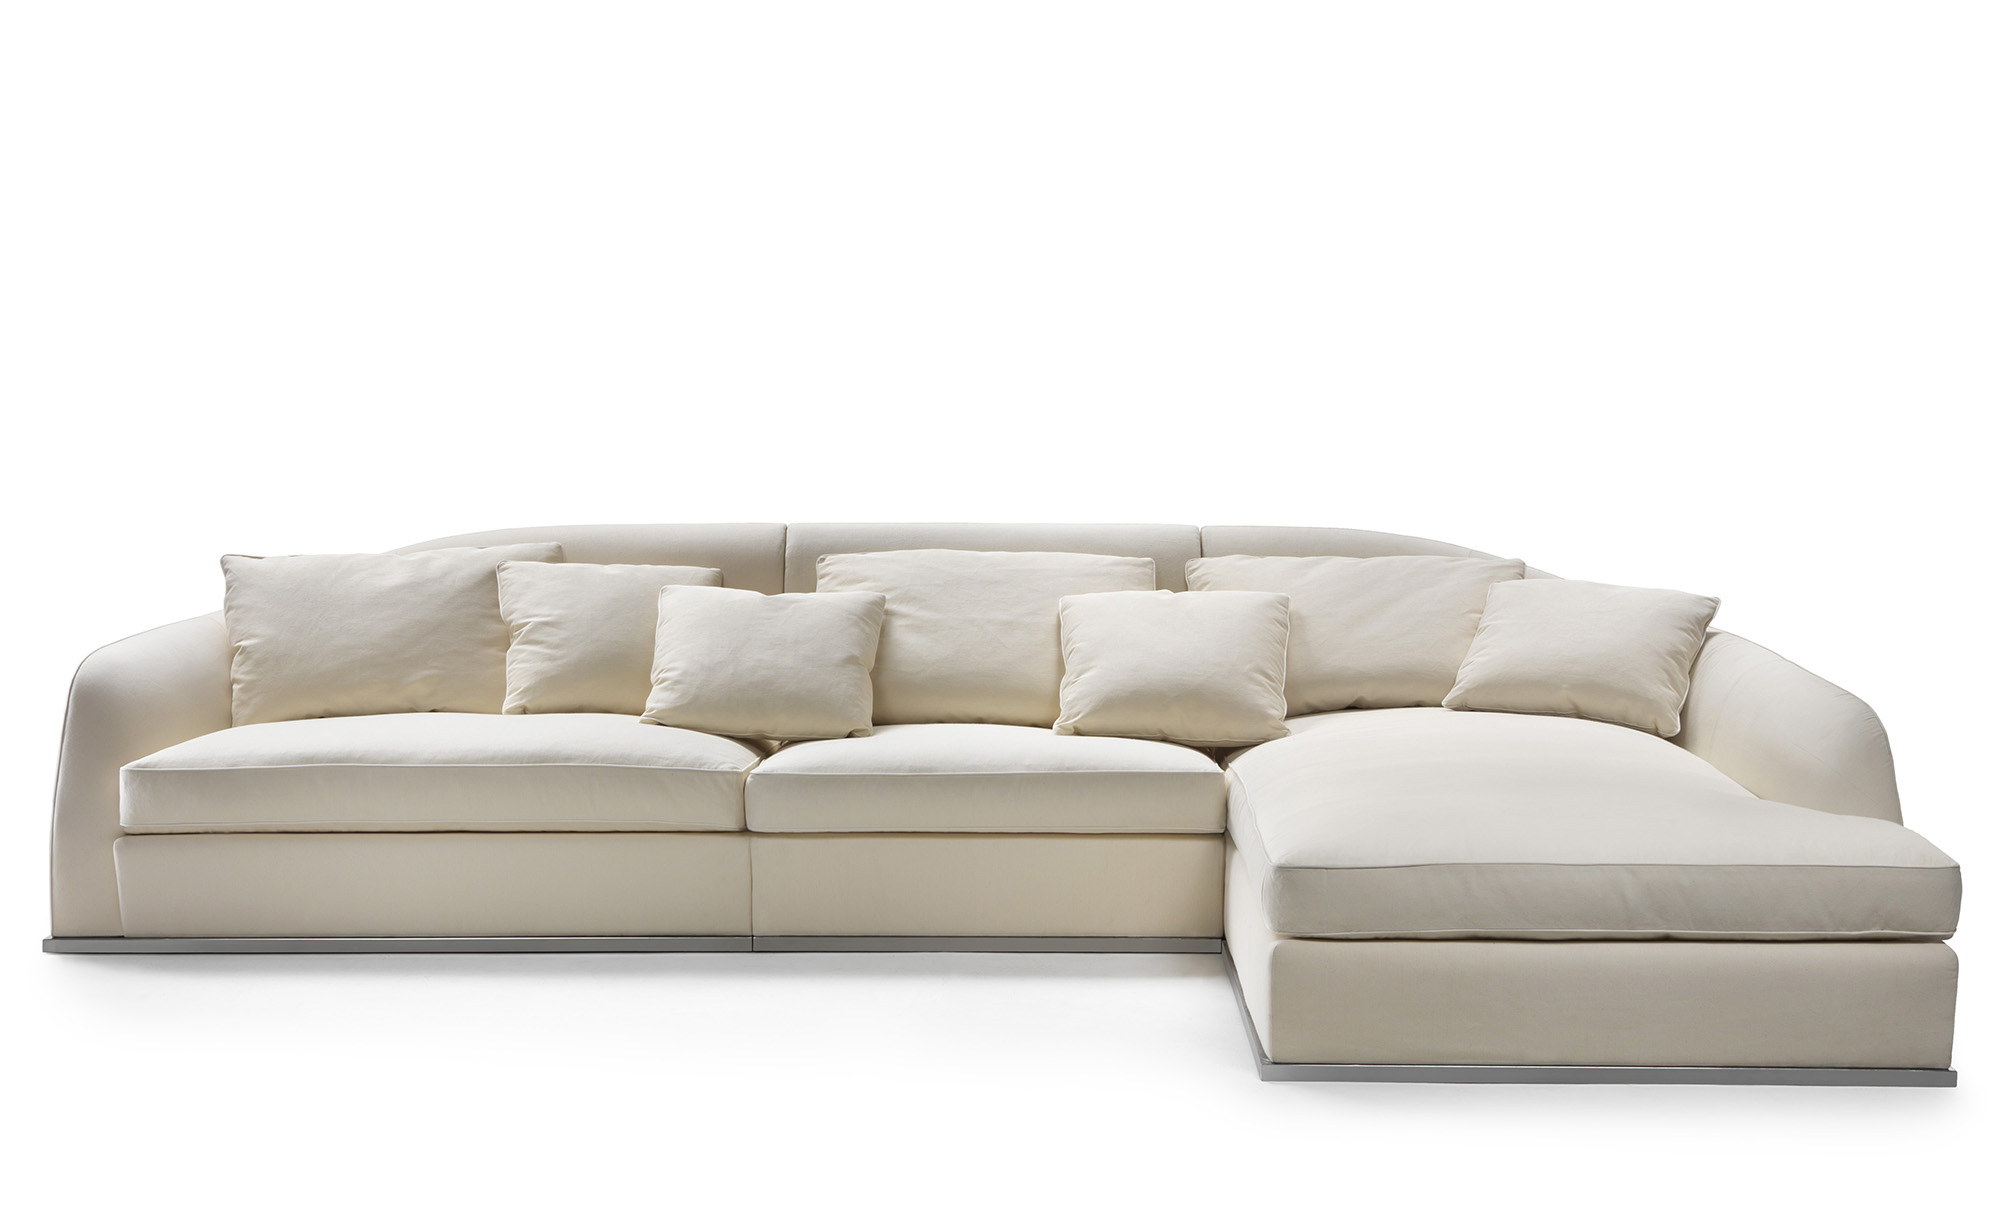 Couch Furniture Alfred Modular Sofa By Flexform Mood Fanuli Furniture